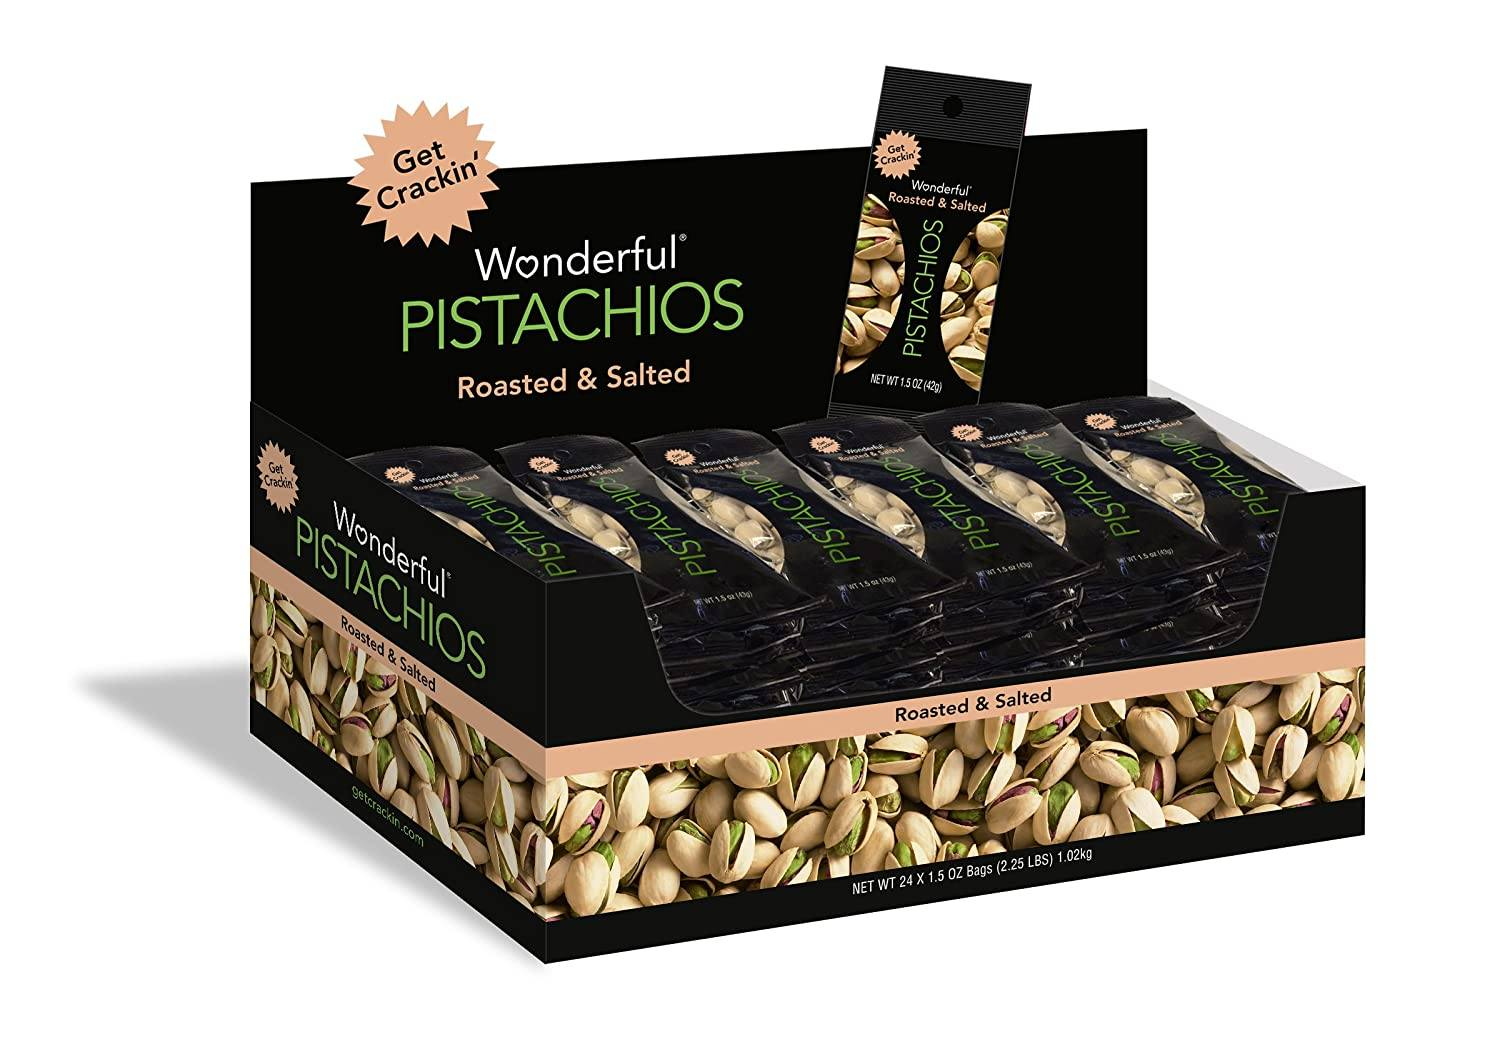 Wonderful Pistachios Wonderful Pistachios & Almonds Roasted & Salted 1.5 Oz-24 Count